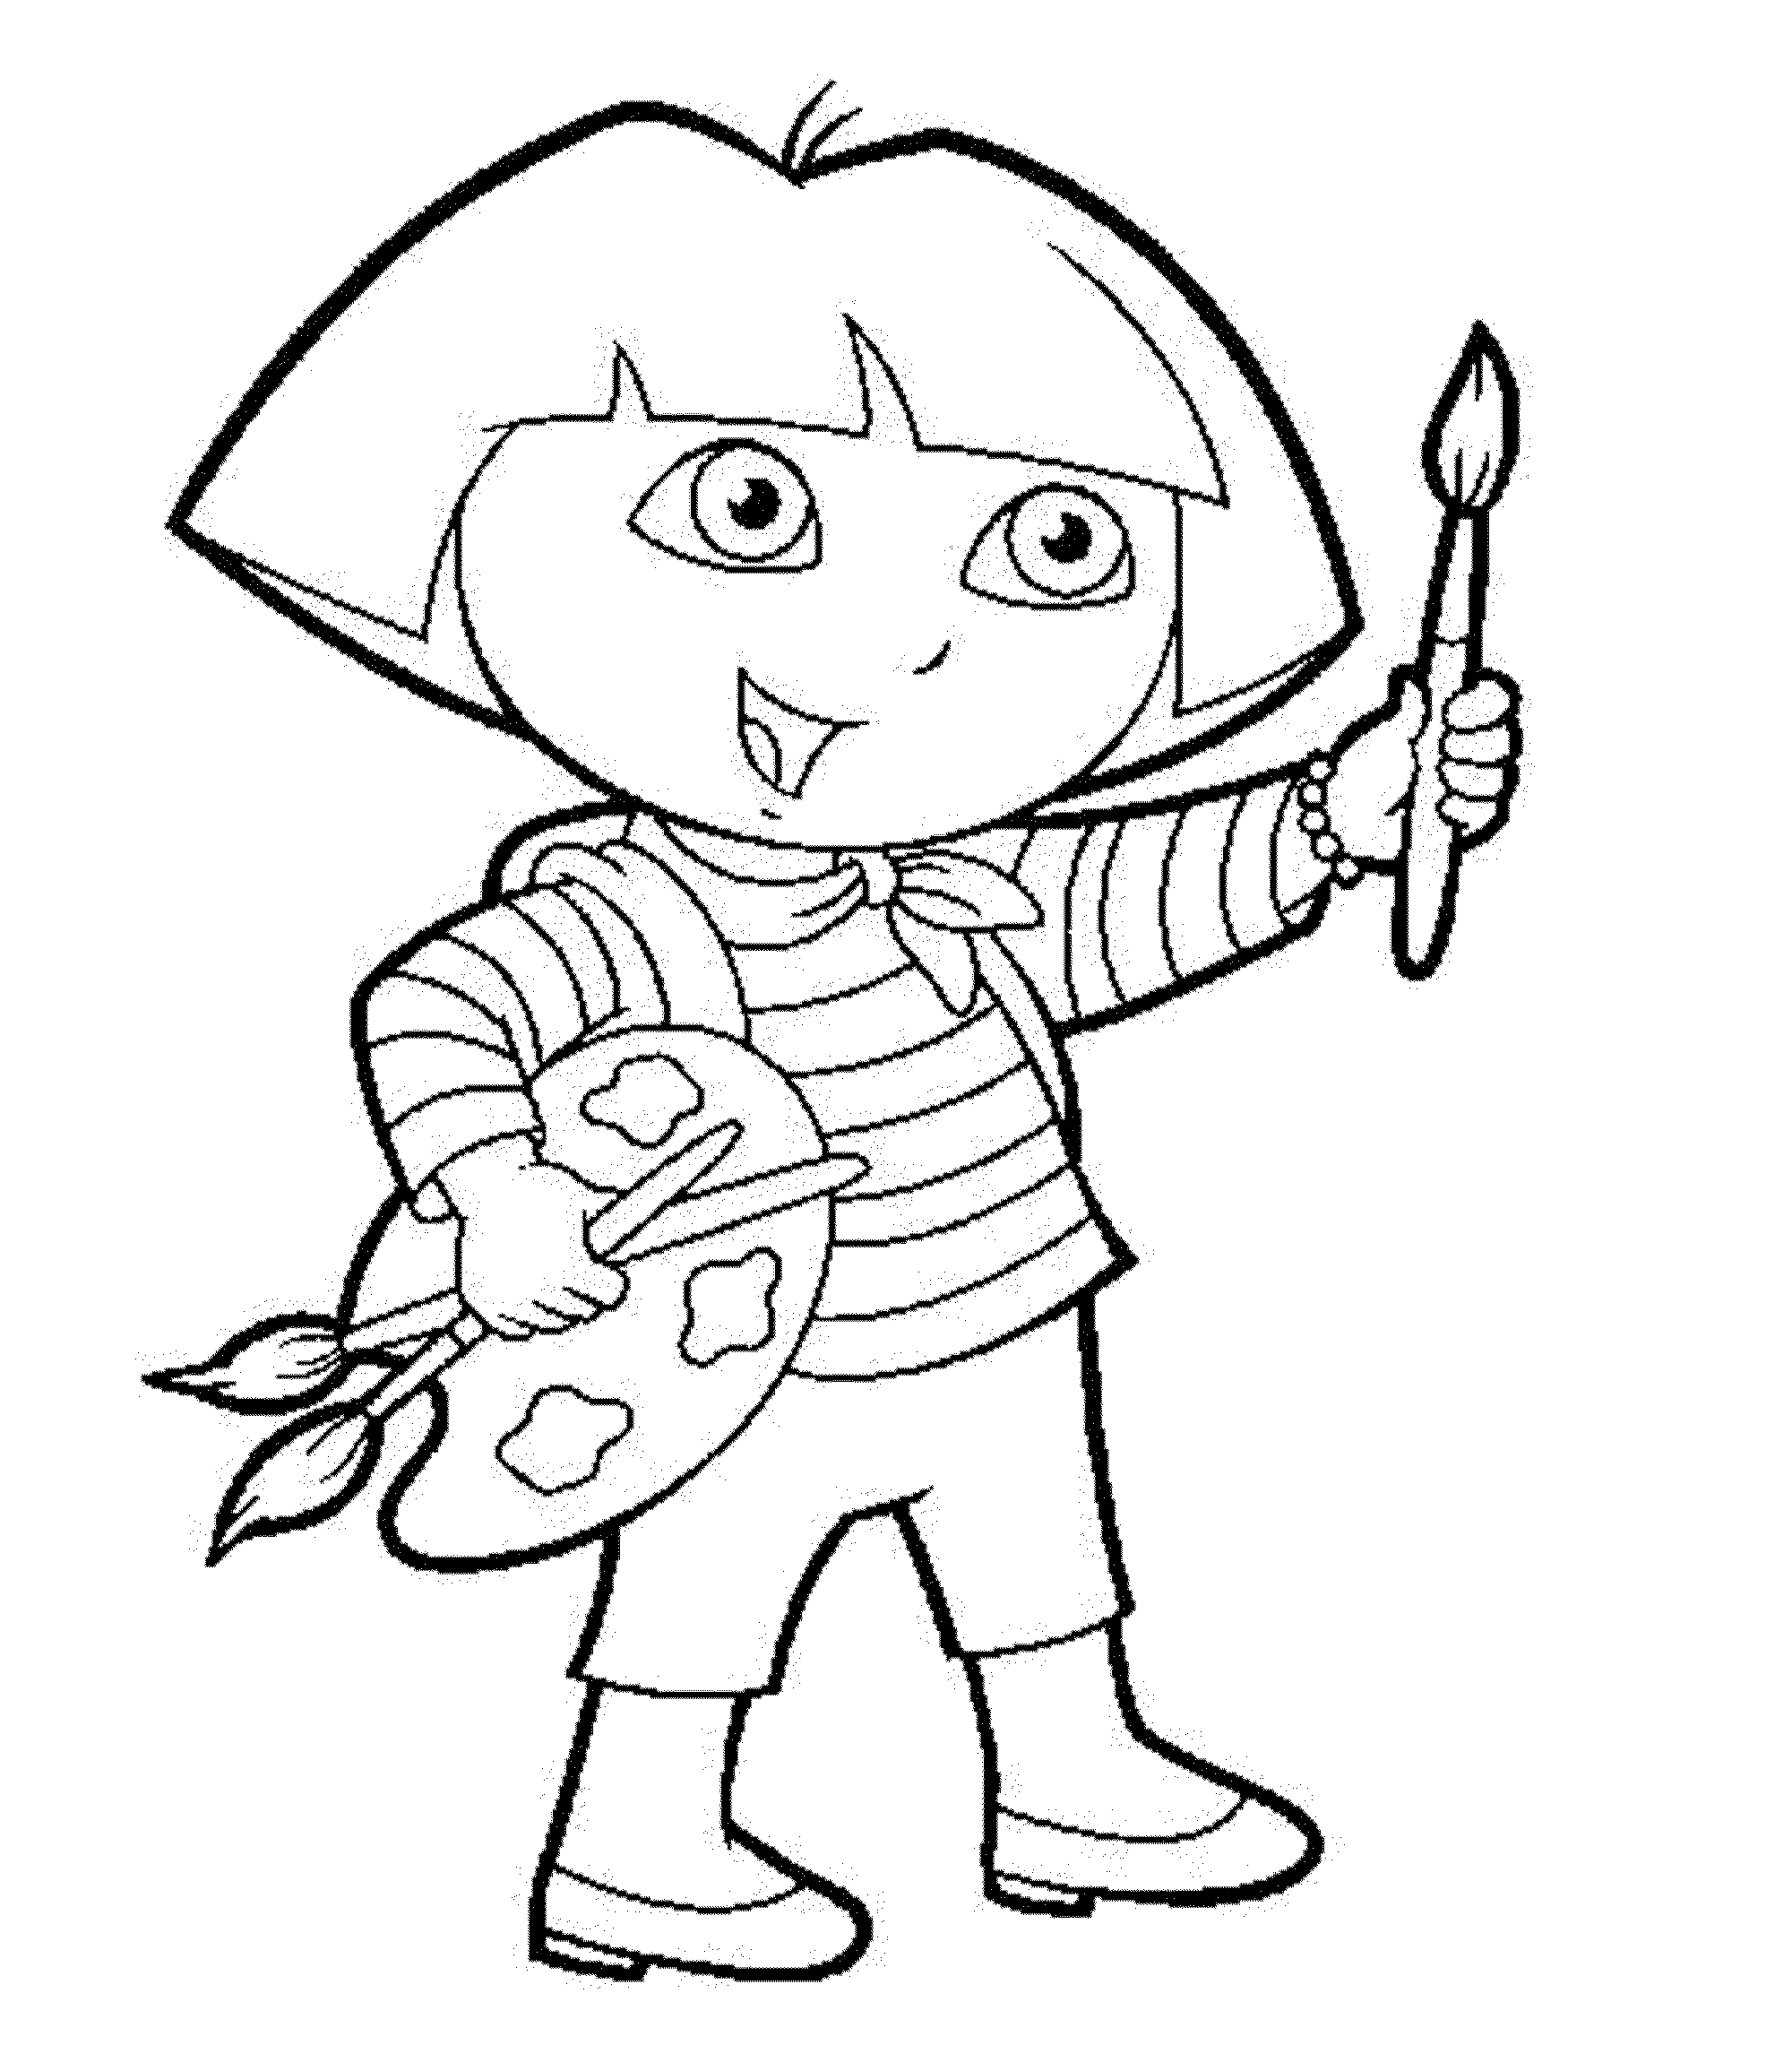 dora painting pictures awesome dora painting coloring page pictures to paint pictures dora painting